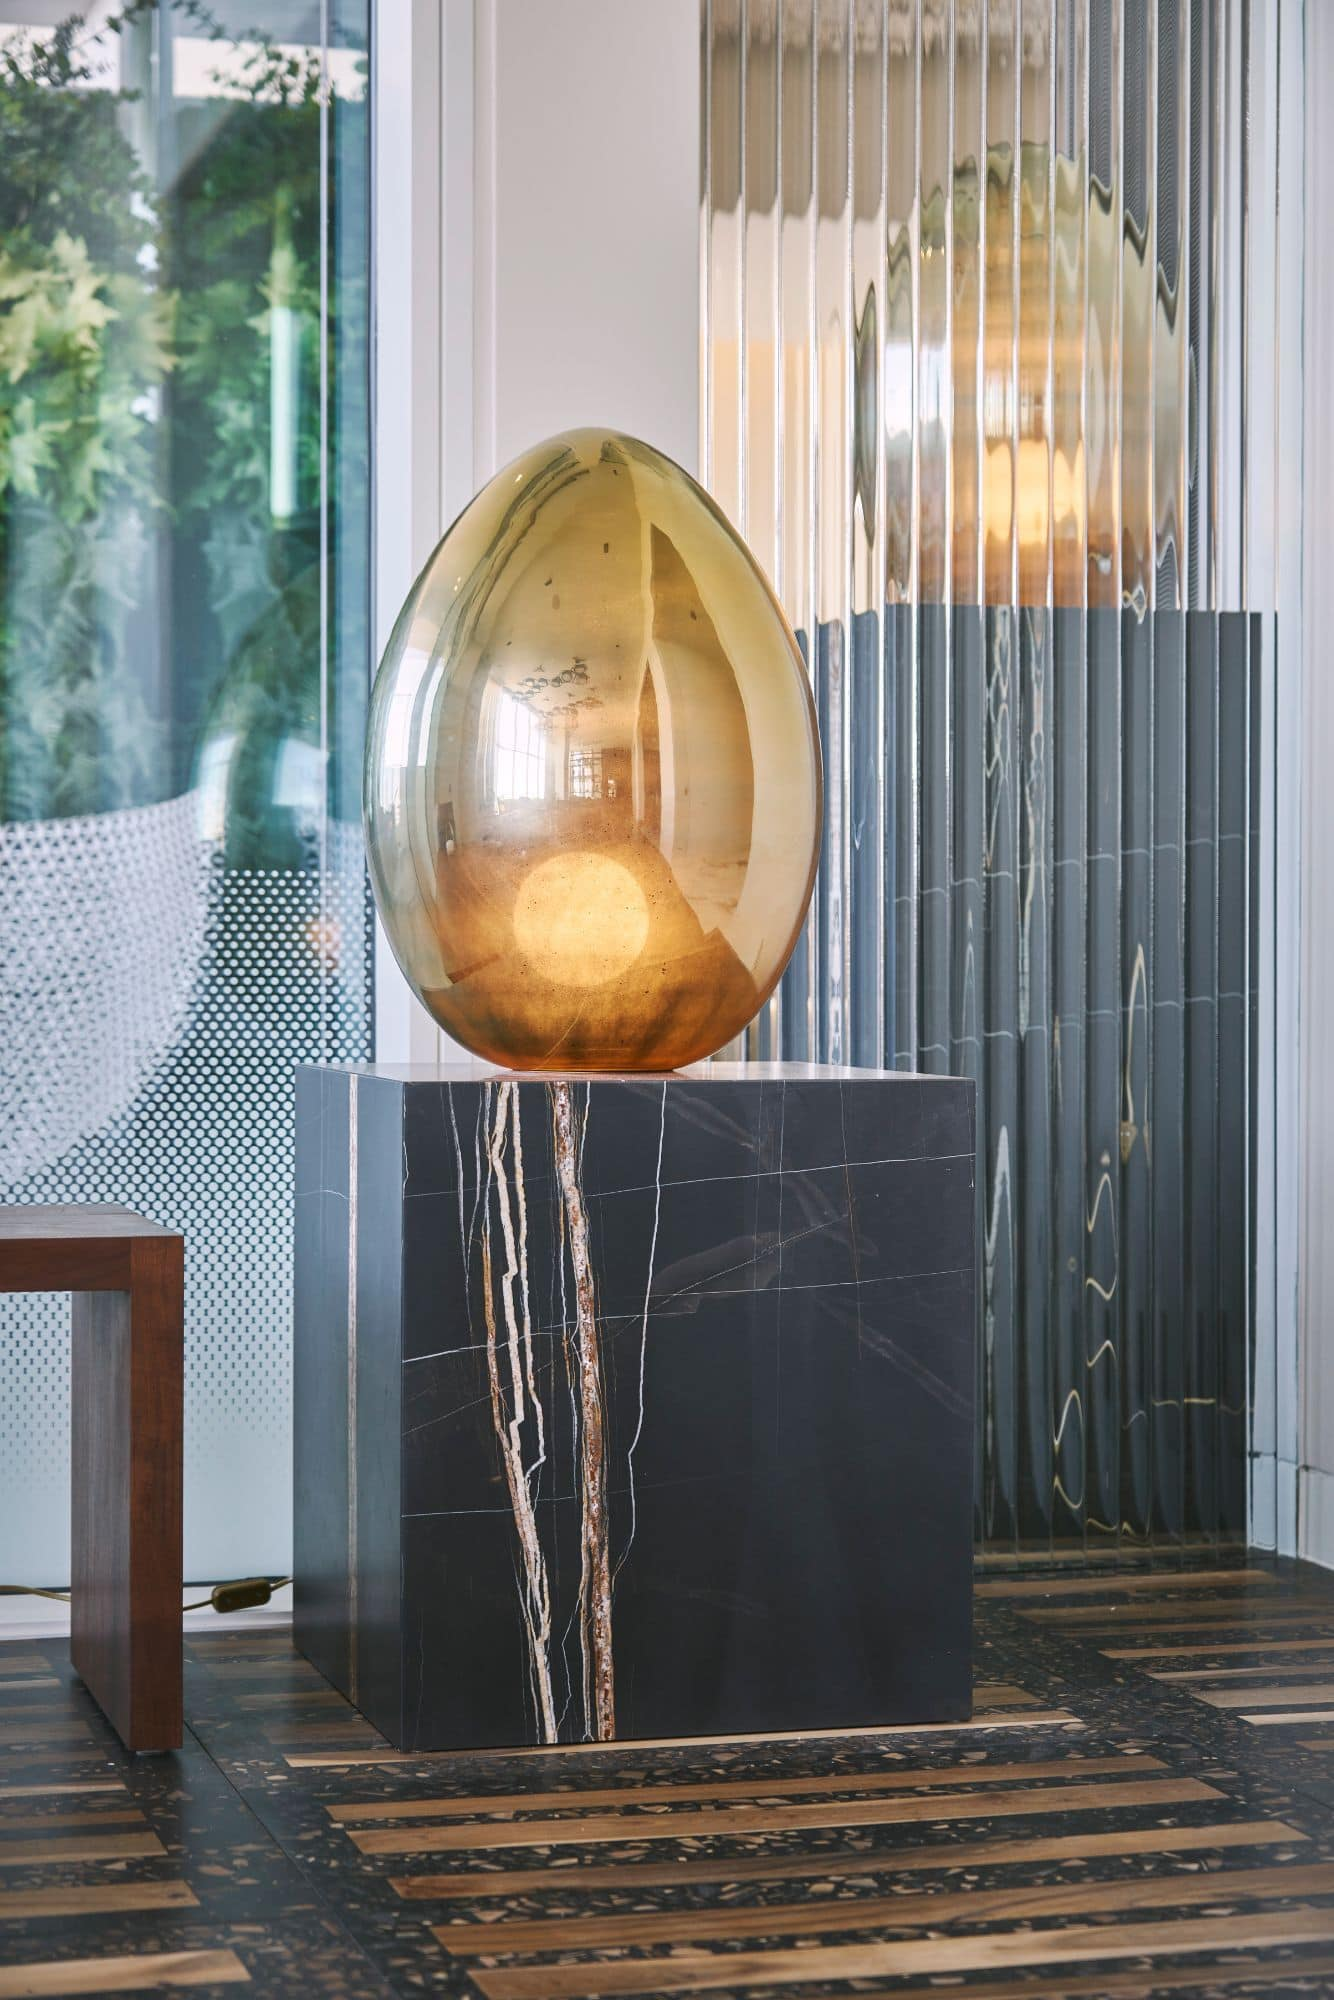 sculptural lighting inside a penthouse of the arabella luxury high rise